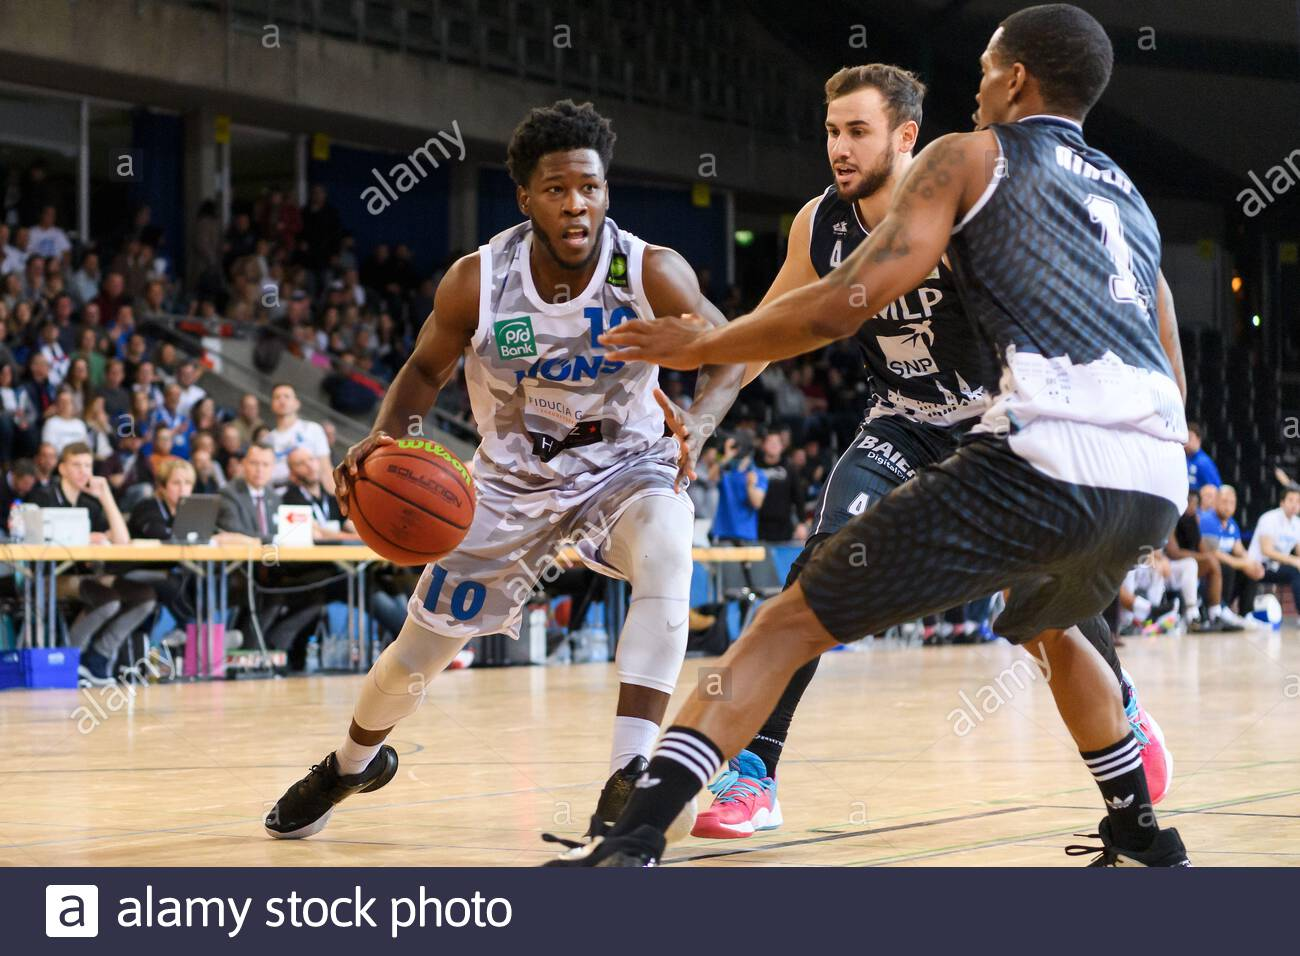 Germany: K.C. Ross-Miller ends the season with 13.5 PPG and 6.5 APG